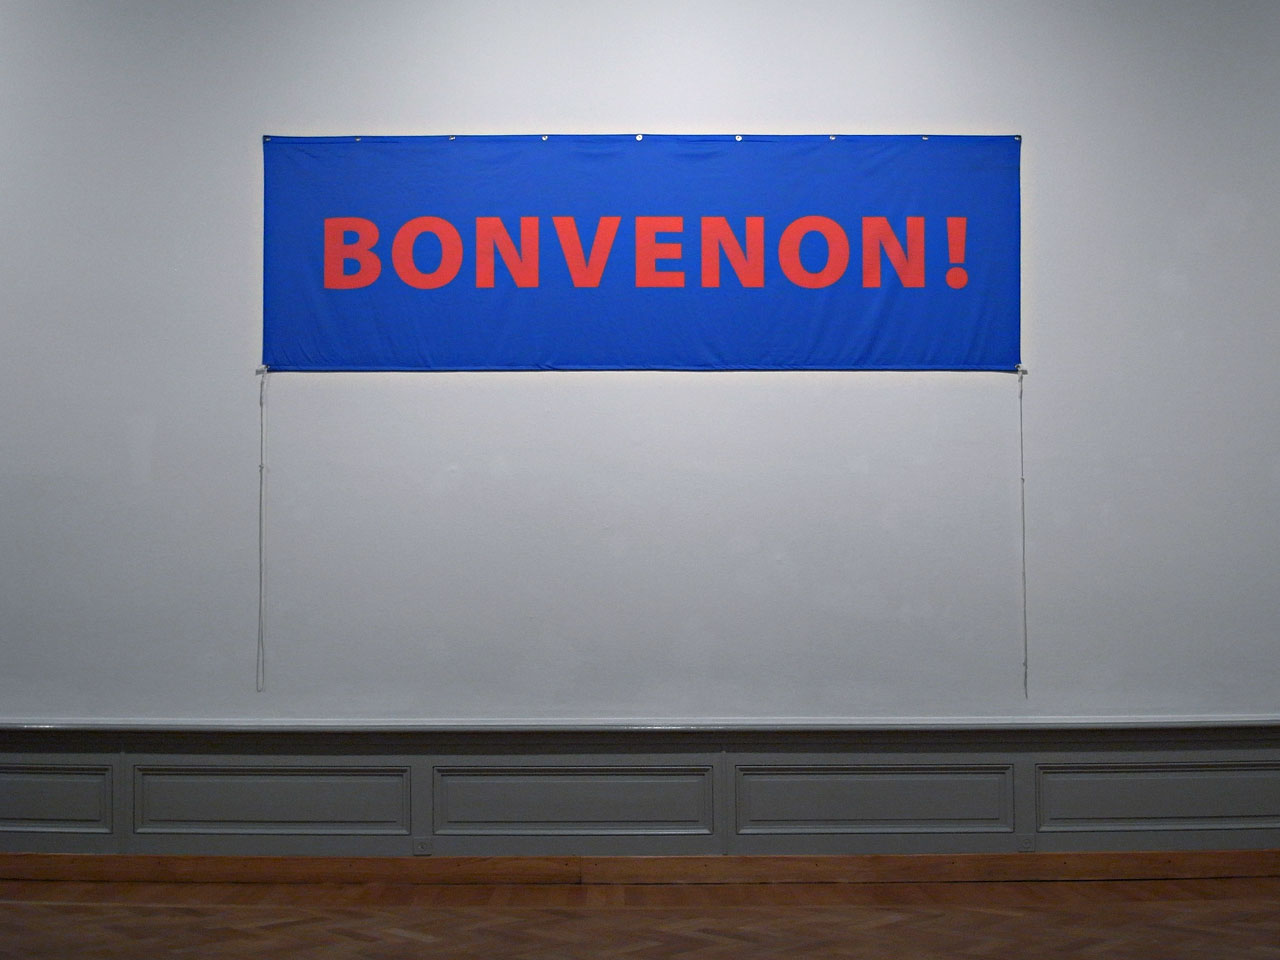 bonvenon